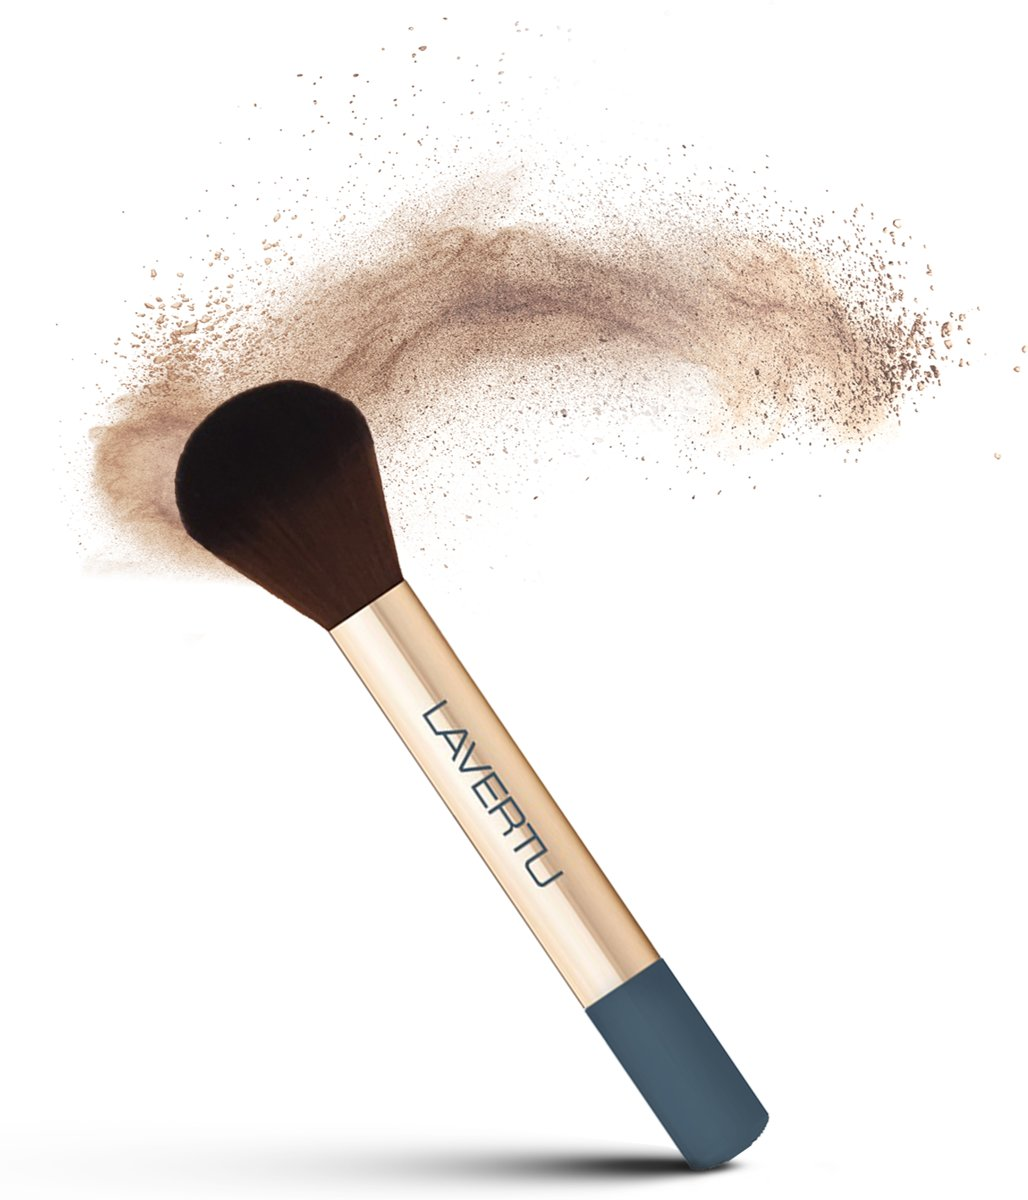 Powder Brush - make-up kwast